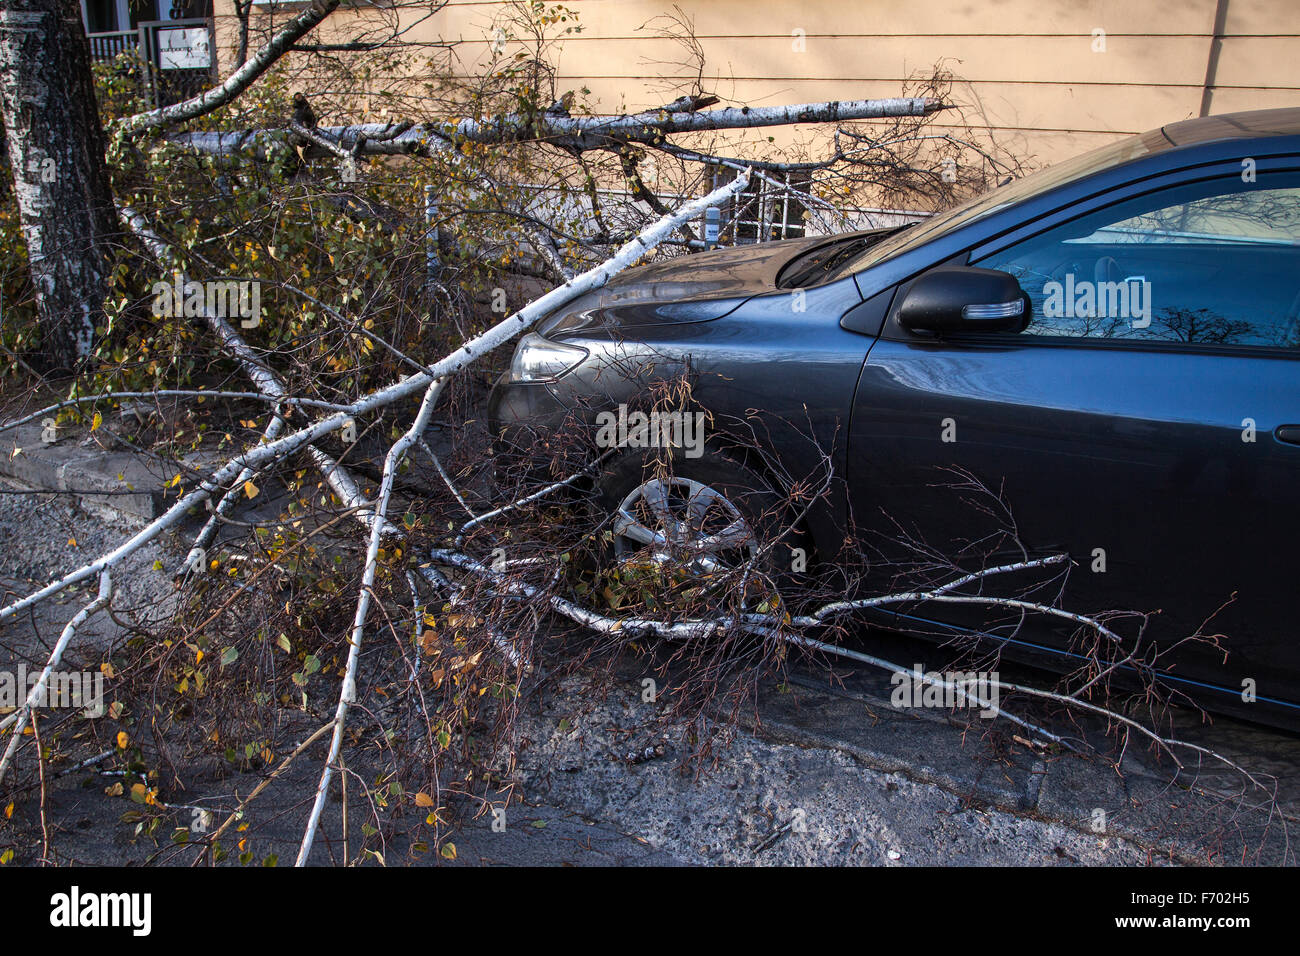 Sofia, Bulgaria - November 22, 2015: Car trapped under fallen tree after wind storm on November 22, 2015 in Sofia, Stock Photo